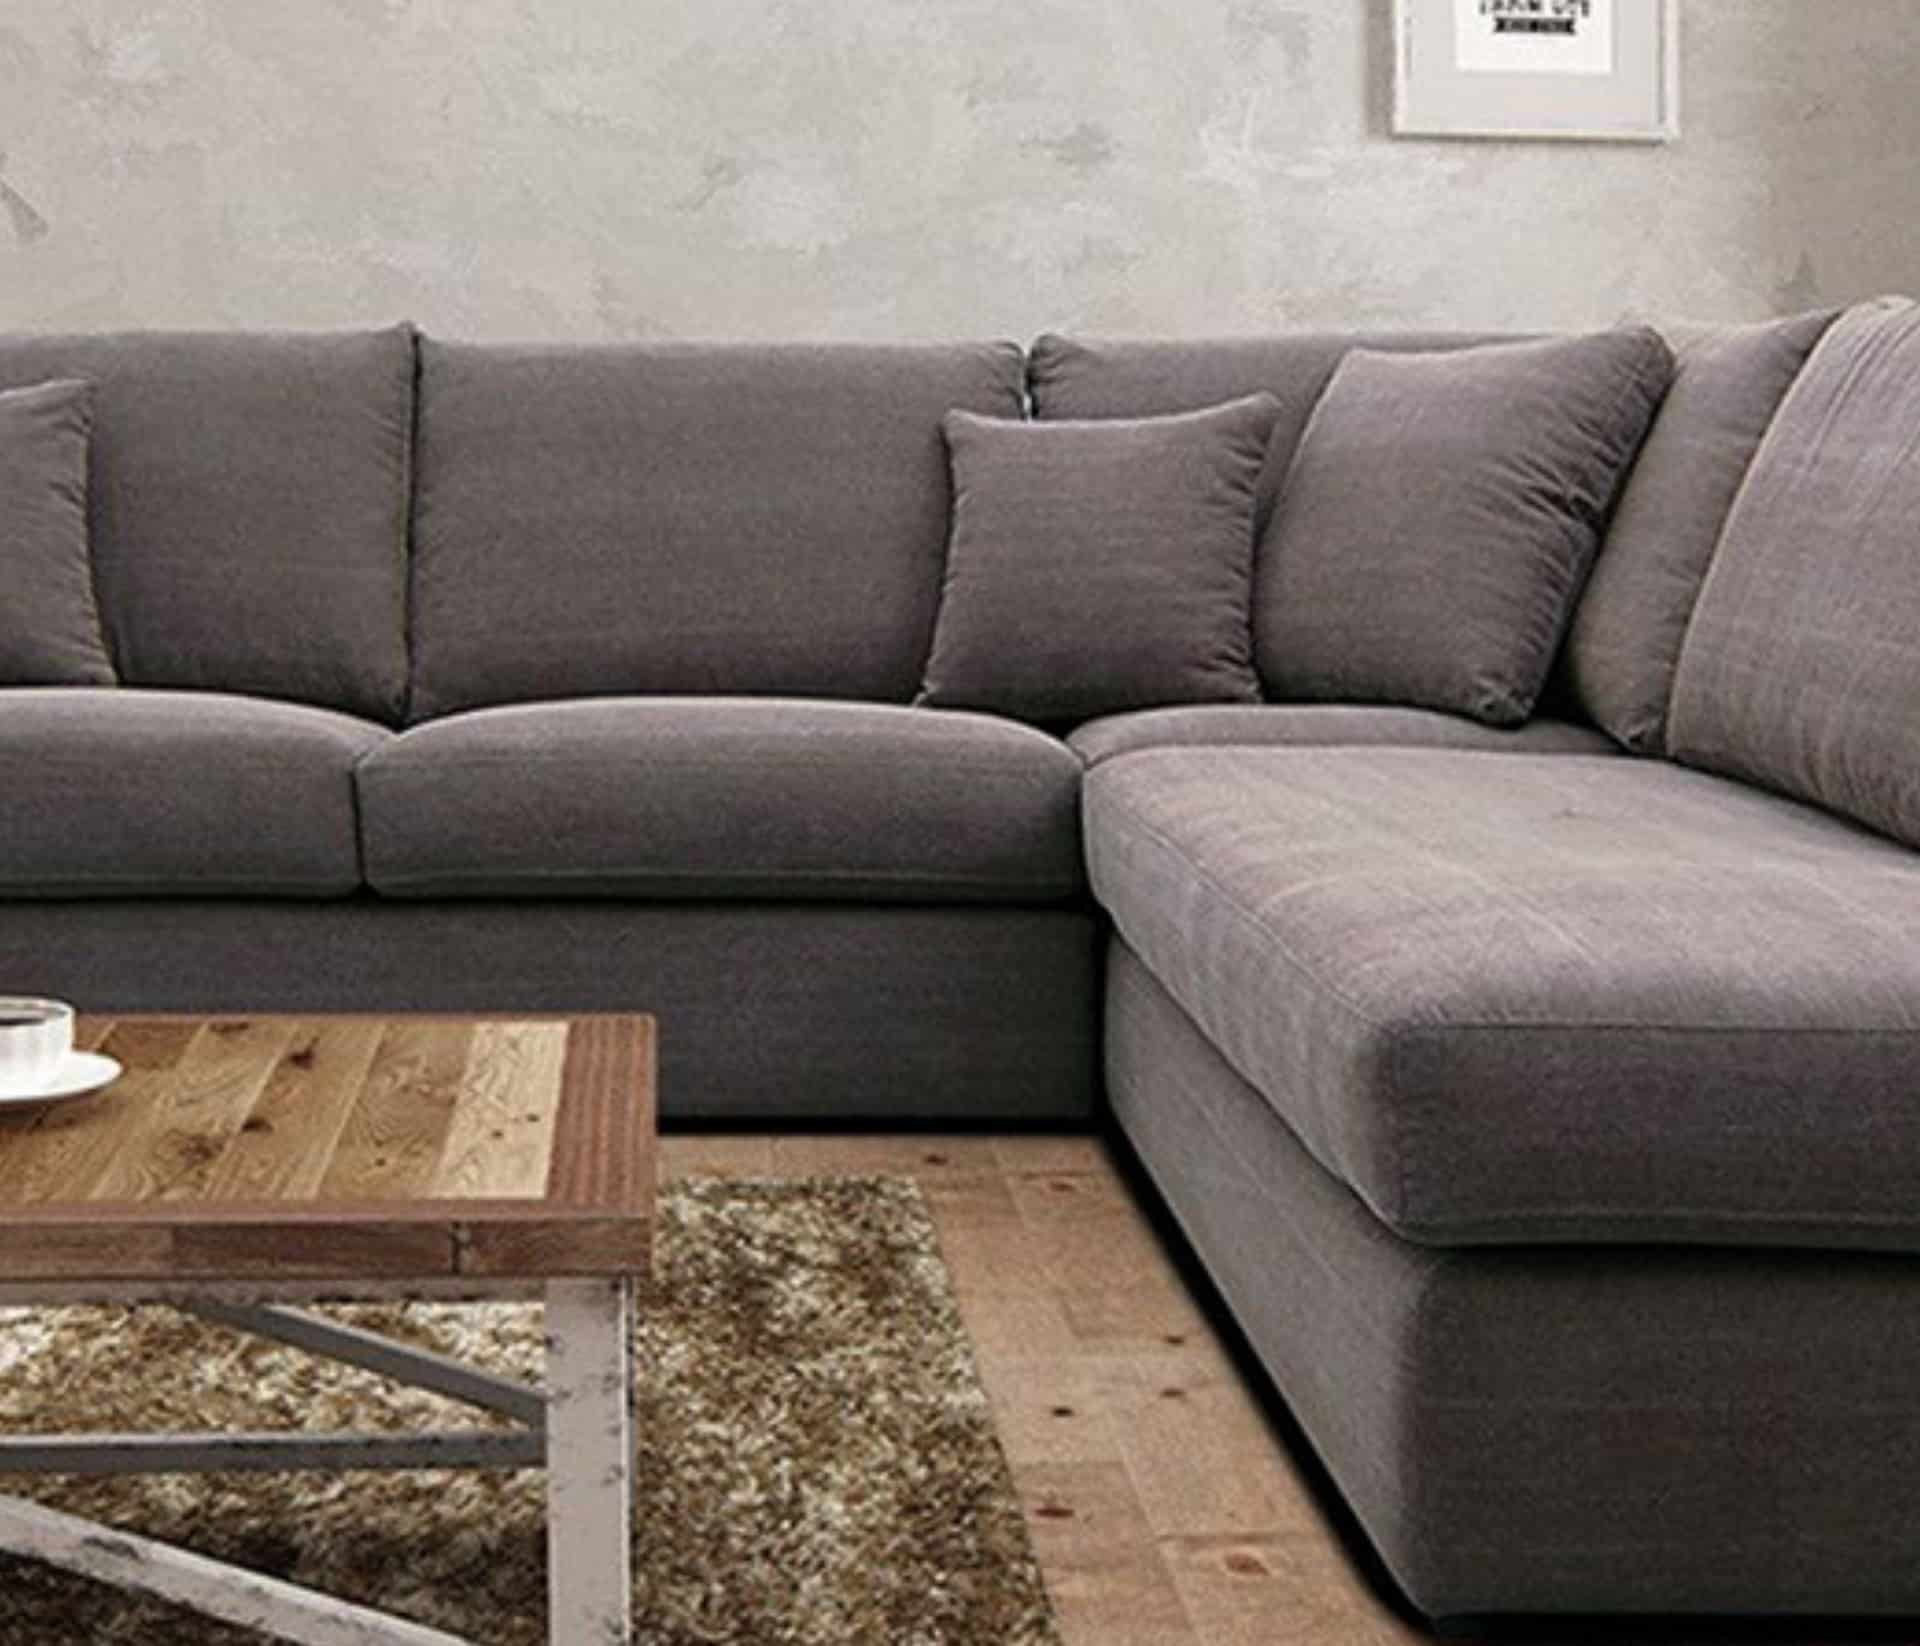 Cleaning fabric sofa? Our tips